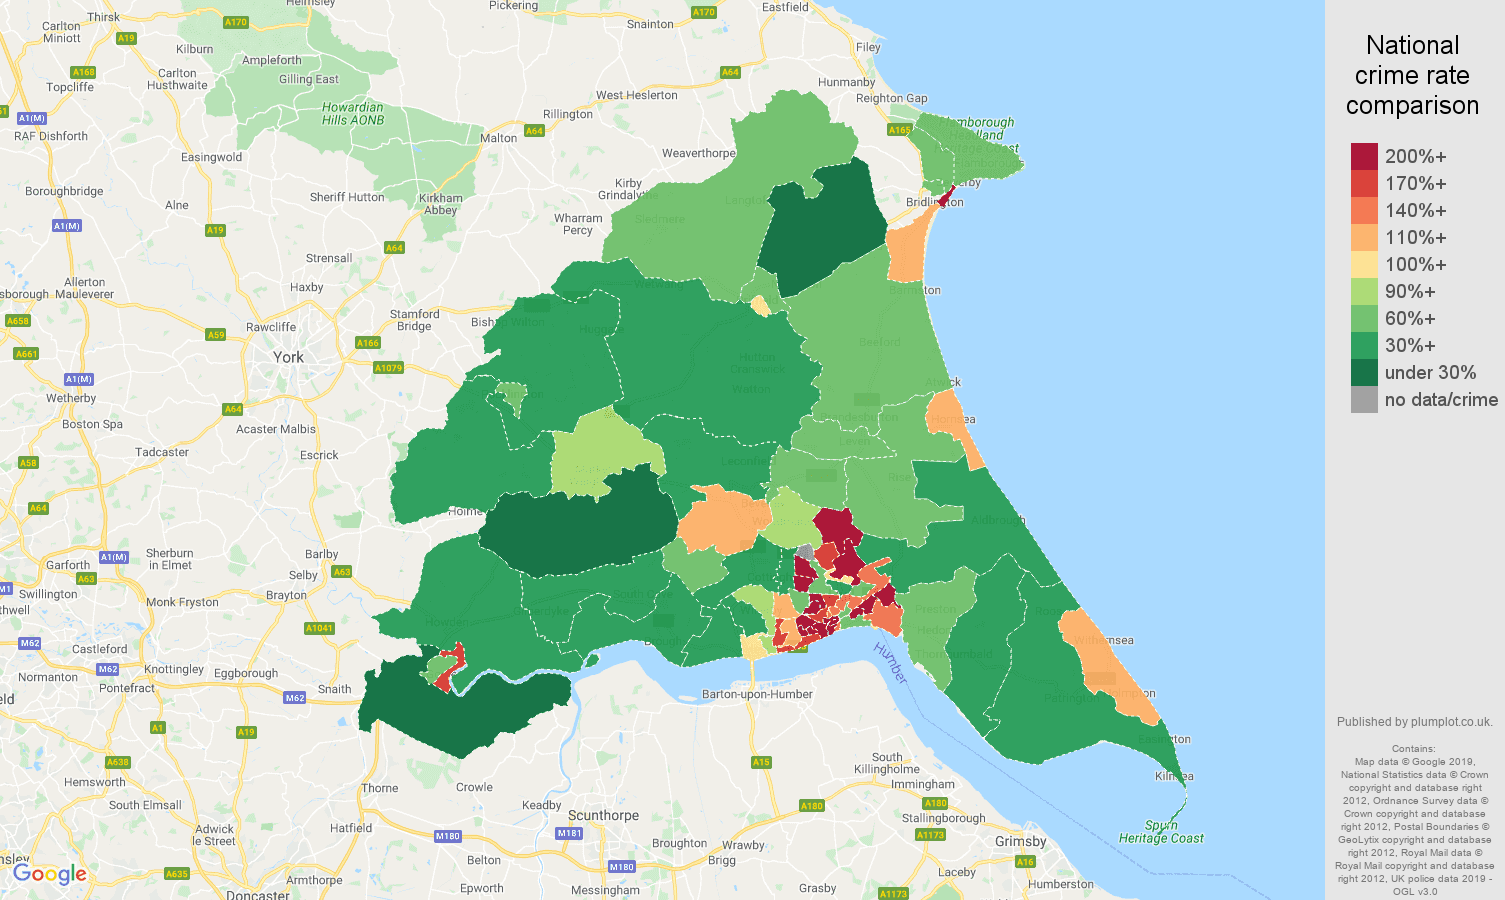 East Riding of Yorkshire public order crime rate comparison map